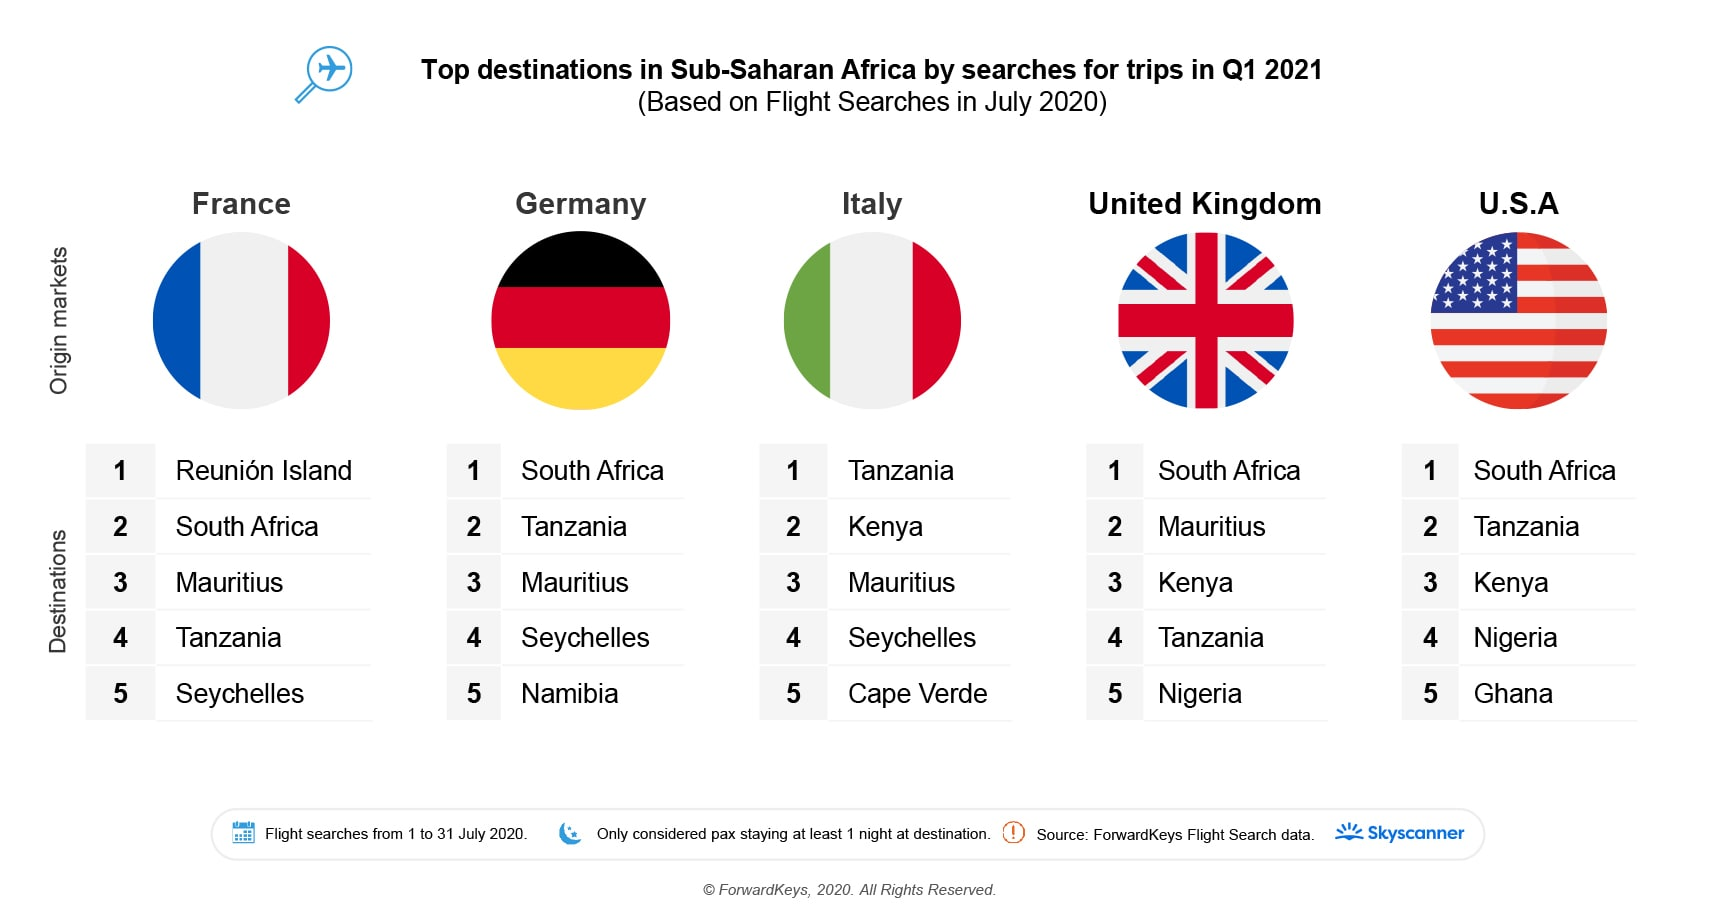 Top-Searched-Destination-countries-in-Sub-Saharan-Africa-per-Source-Market-3